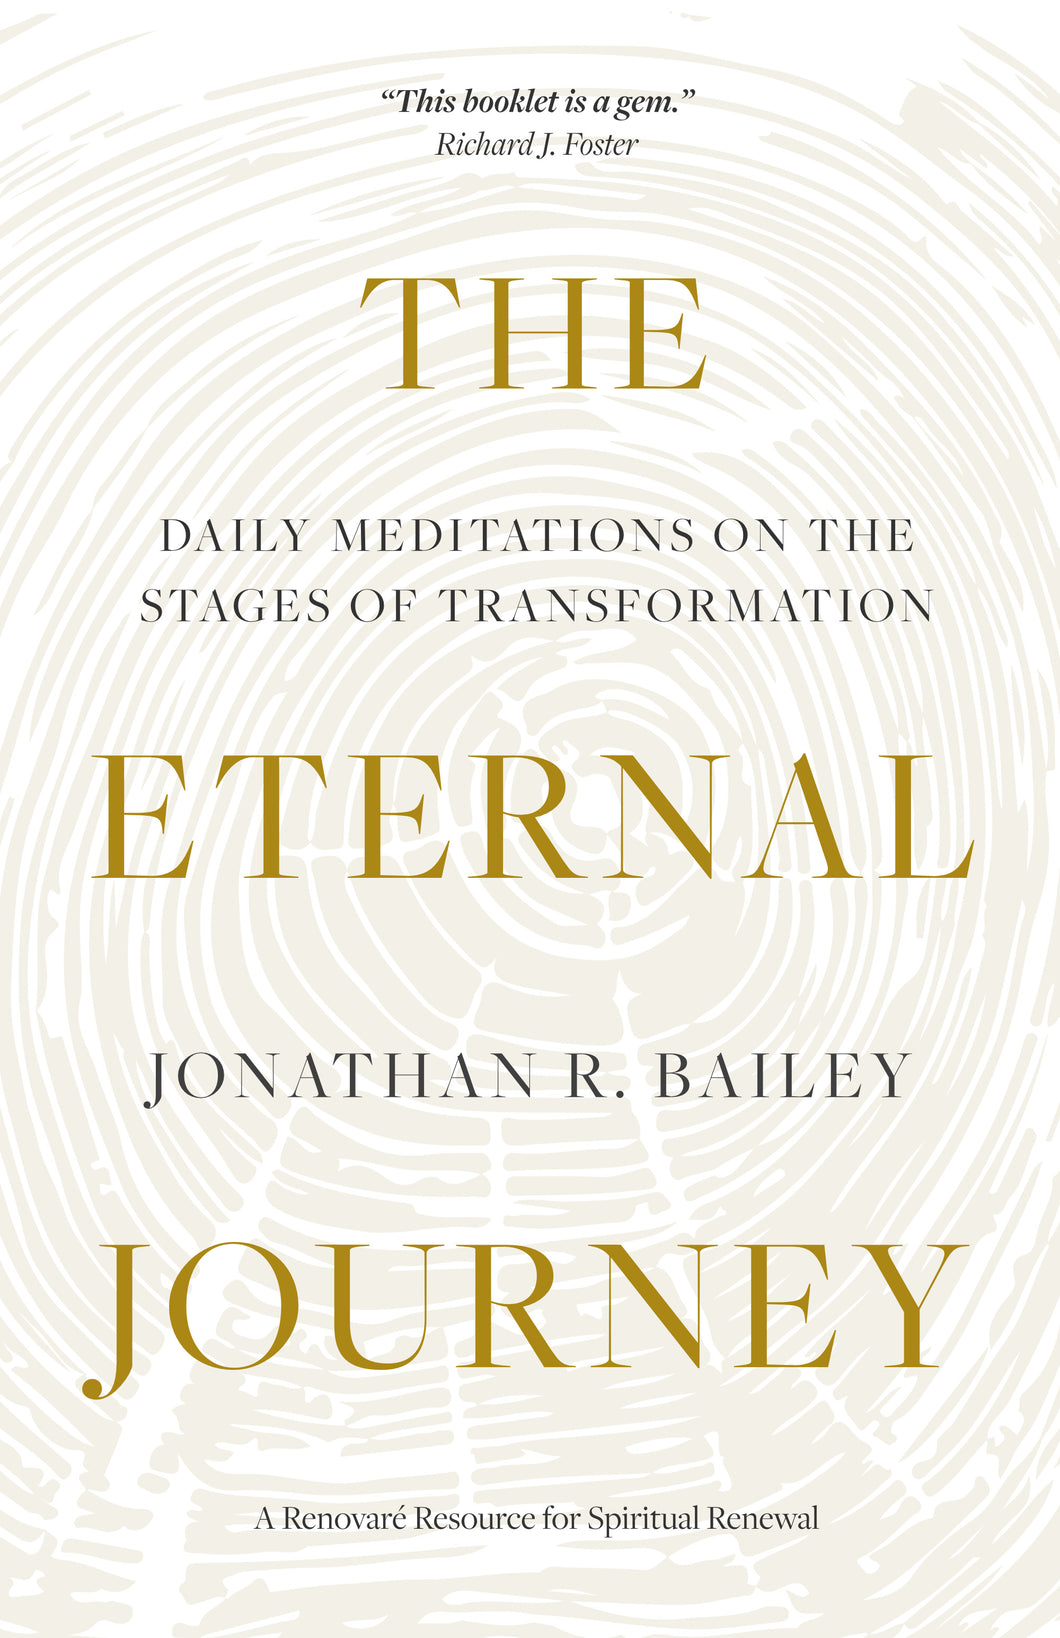 The Eternal Journey (Jonathan R. Bailey)